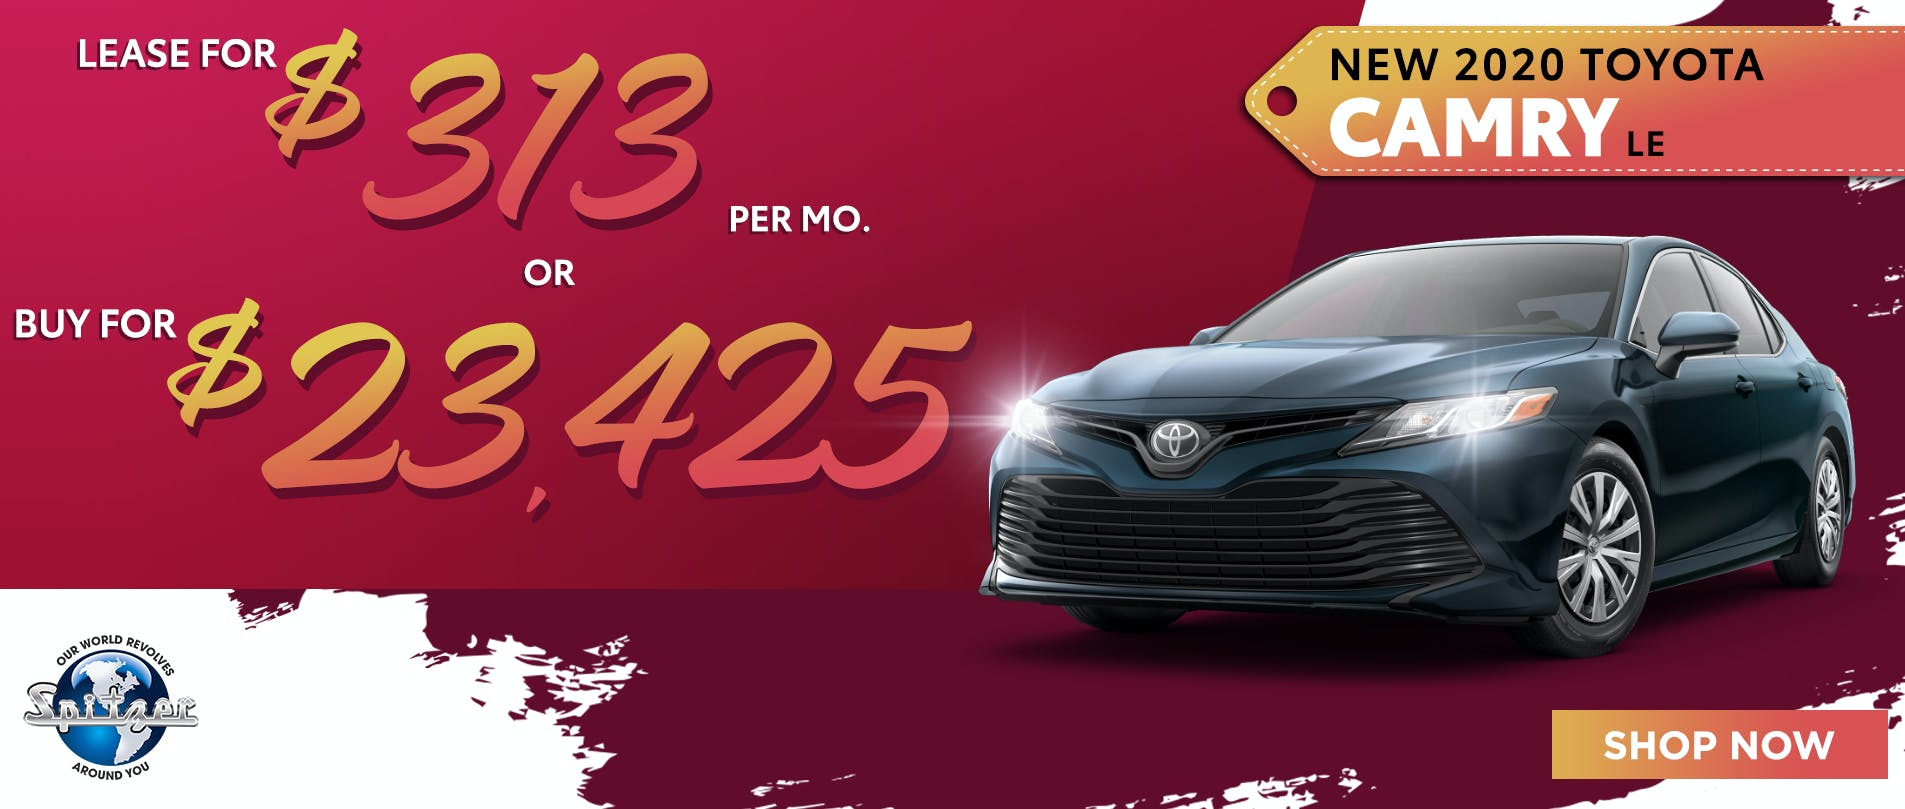 Camry   Lease for $313 per mo or buy for $23,425